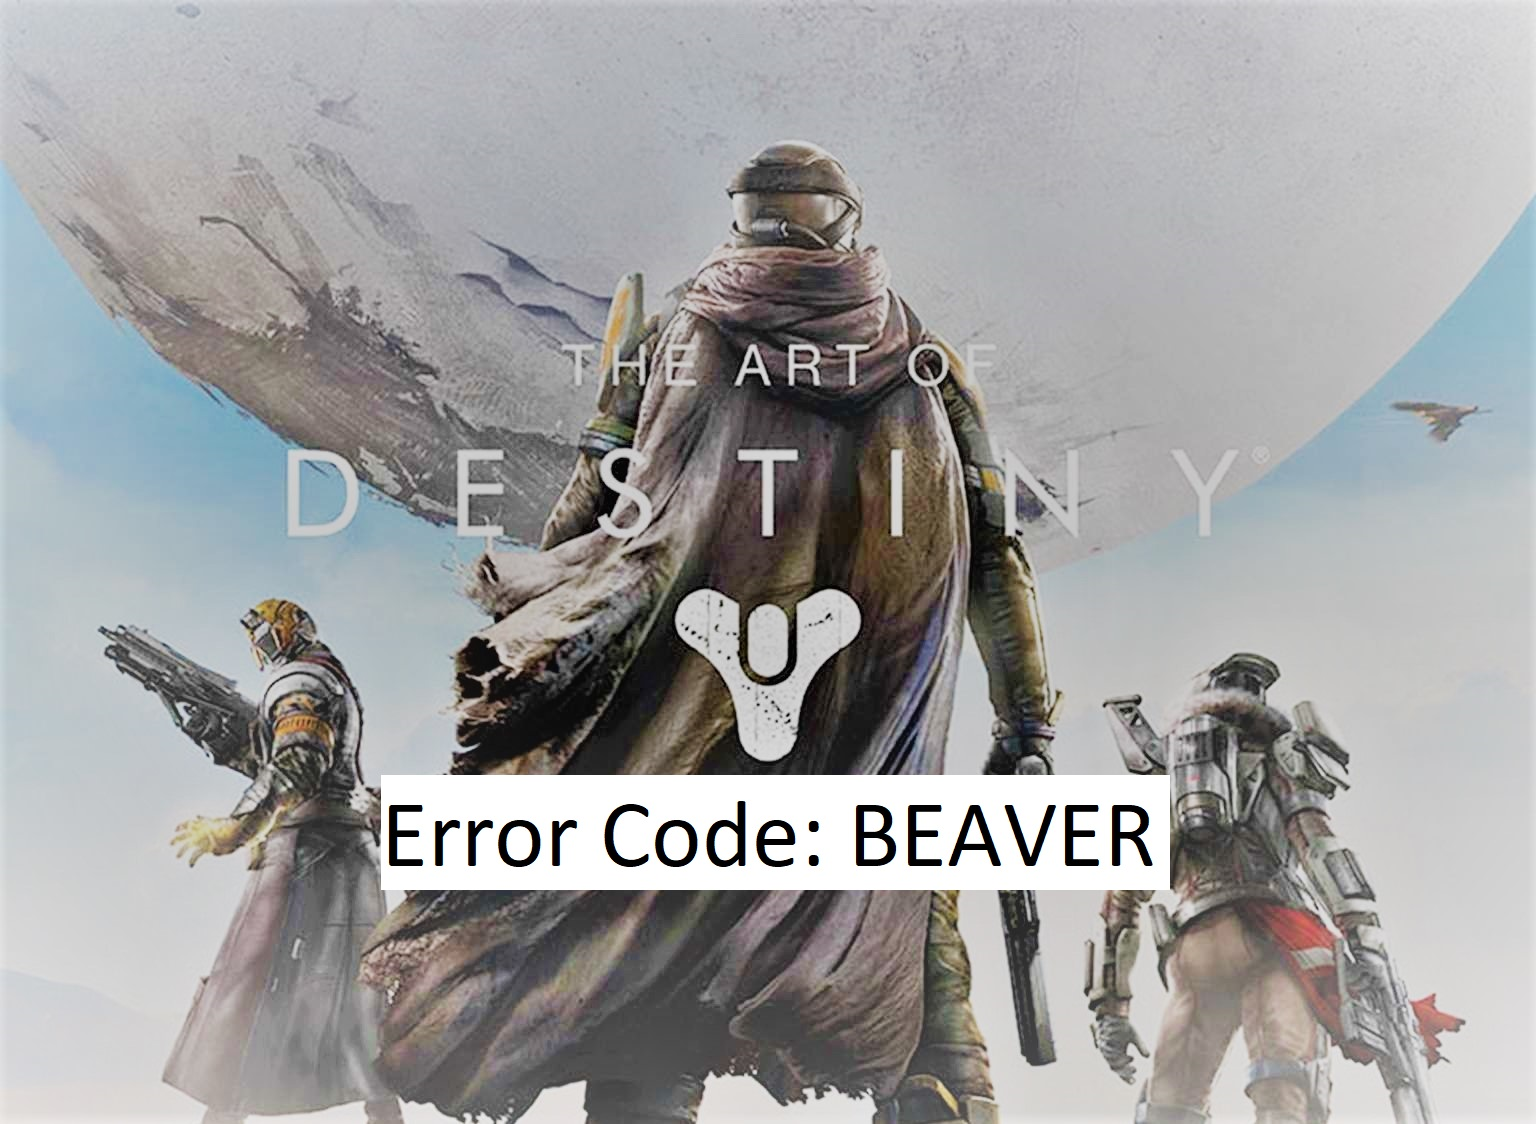 How to fix Error Code: BEAVER in Destiny